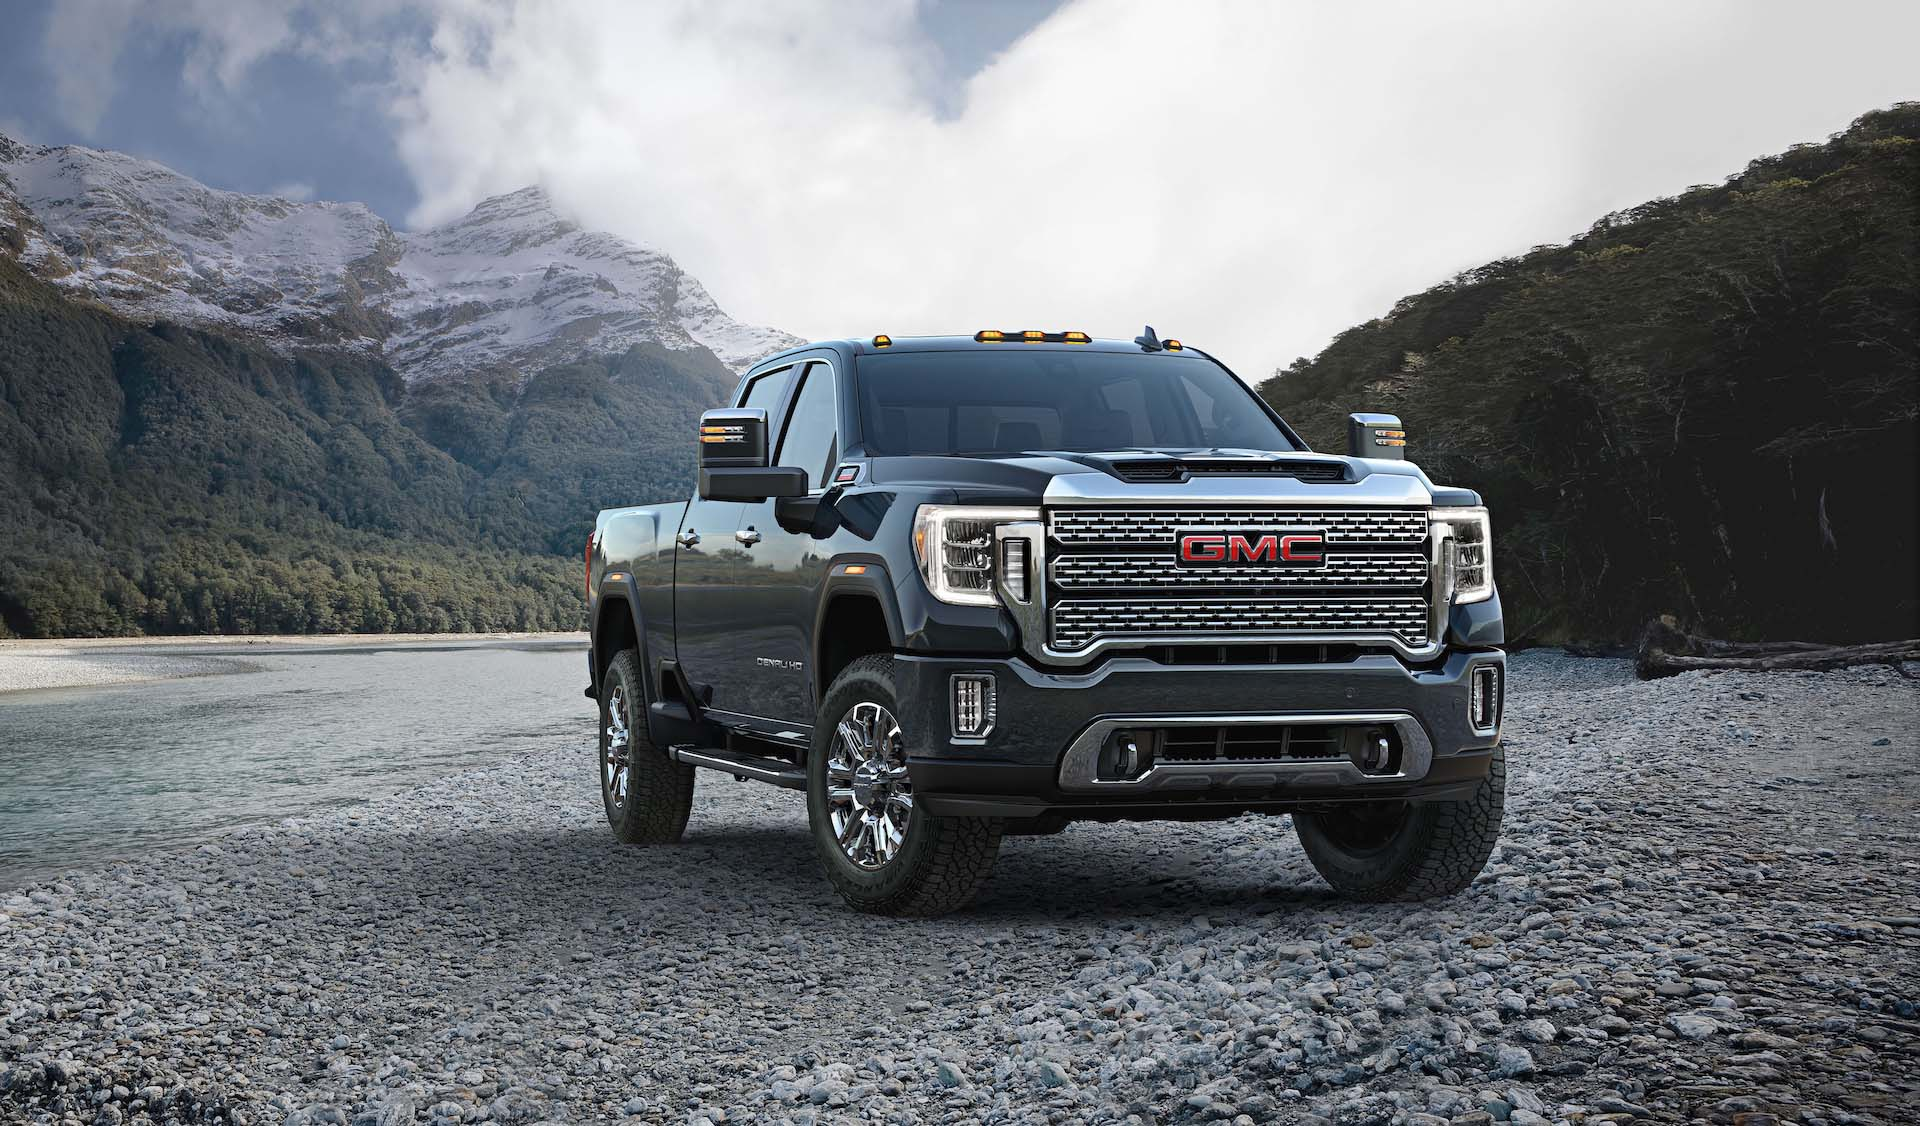 2020 Gmc Sierra Hd Hauls In Lower Starting Price Than Previous Model